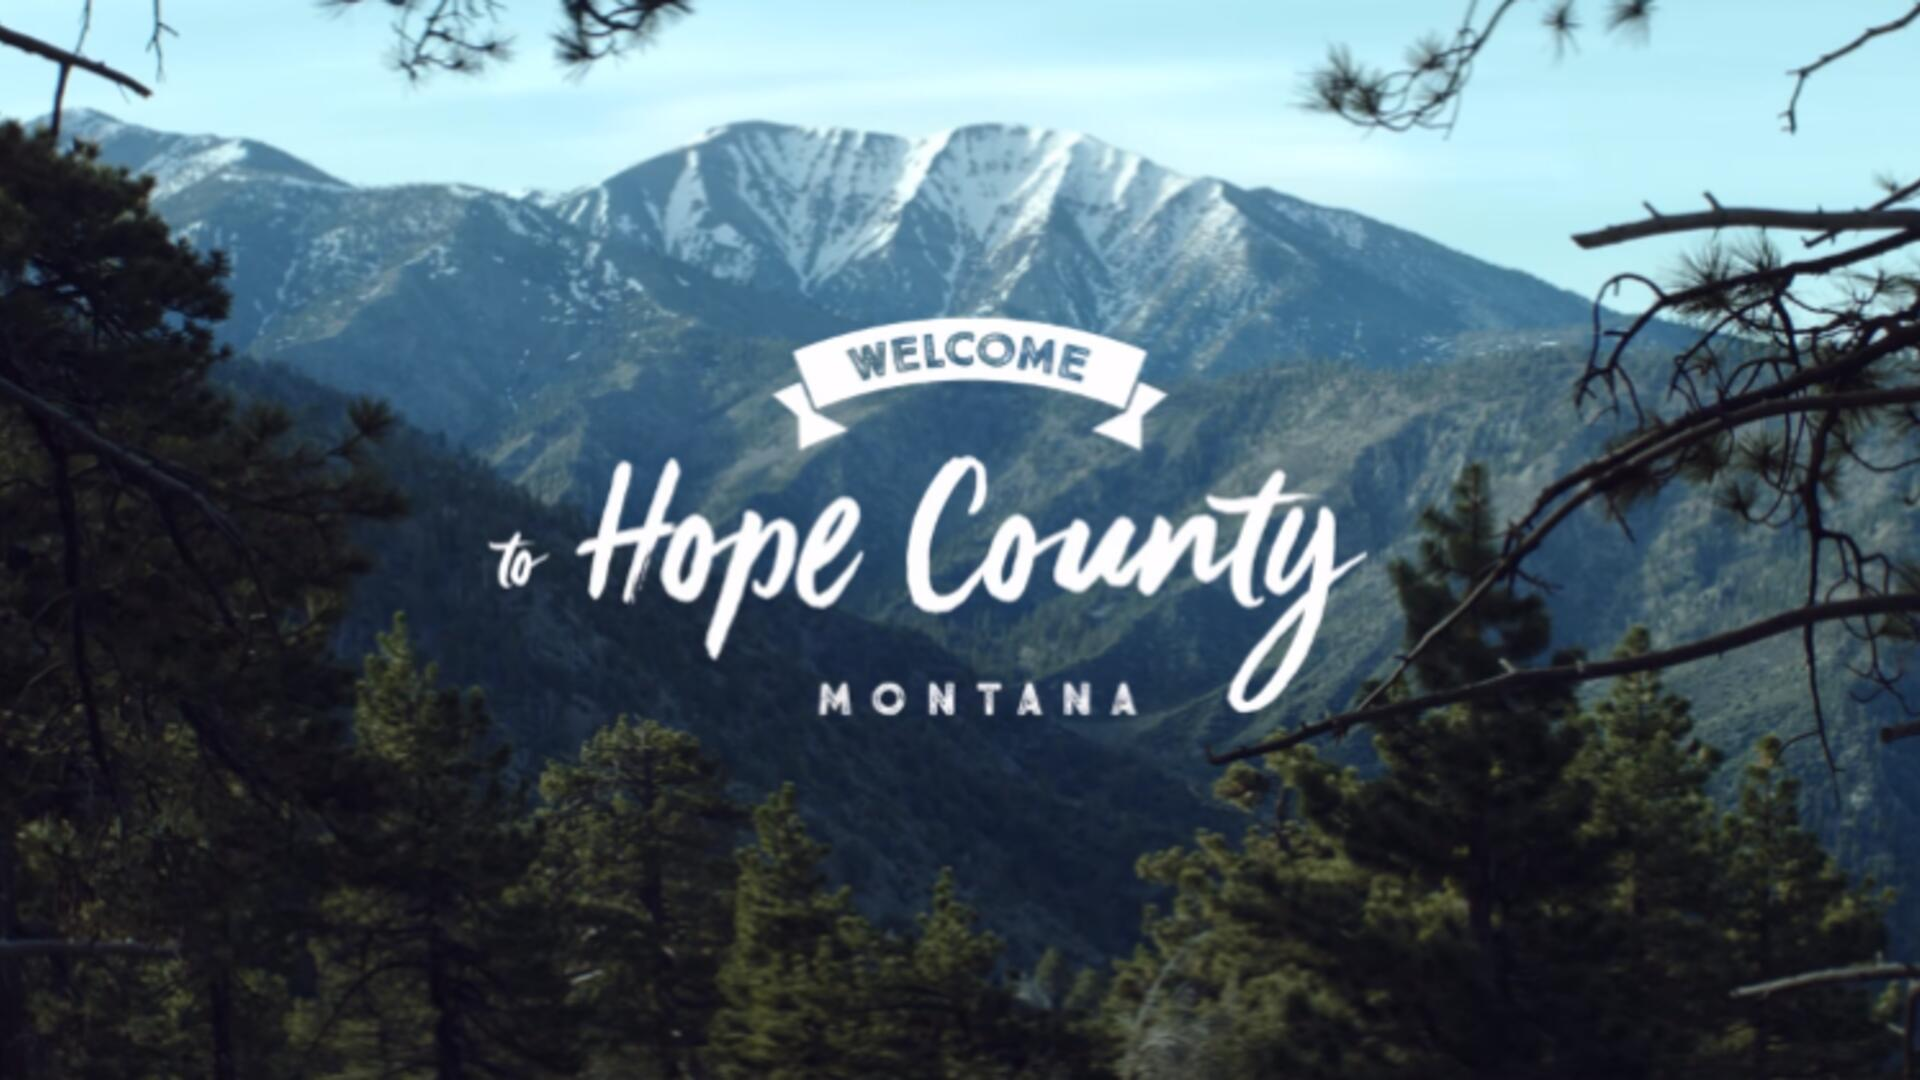 Far Cry 5 Will Take Place in Montana According to Sinister Tourism Videos